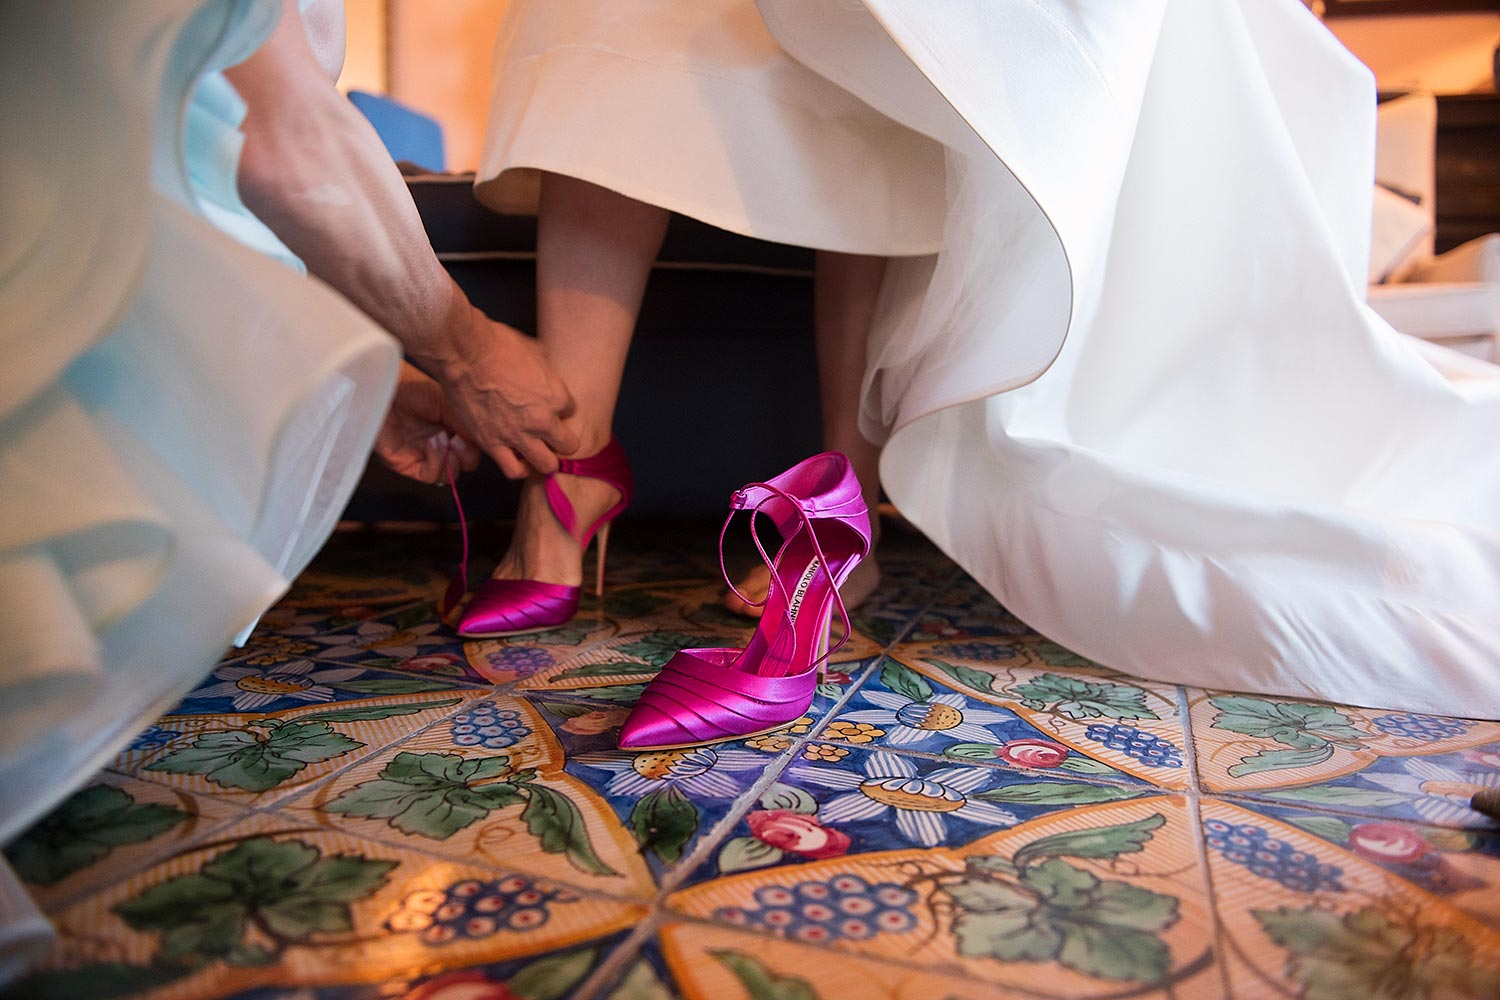 fuchsia wedding shoes Mr. Manolo Blahnik